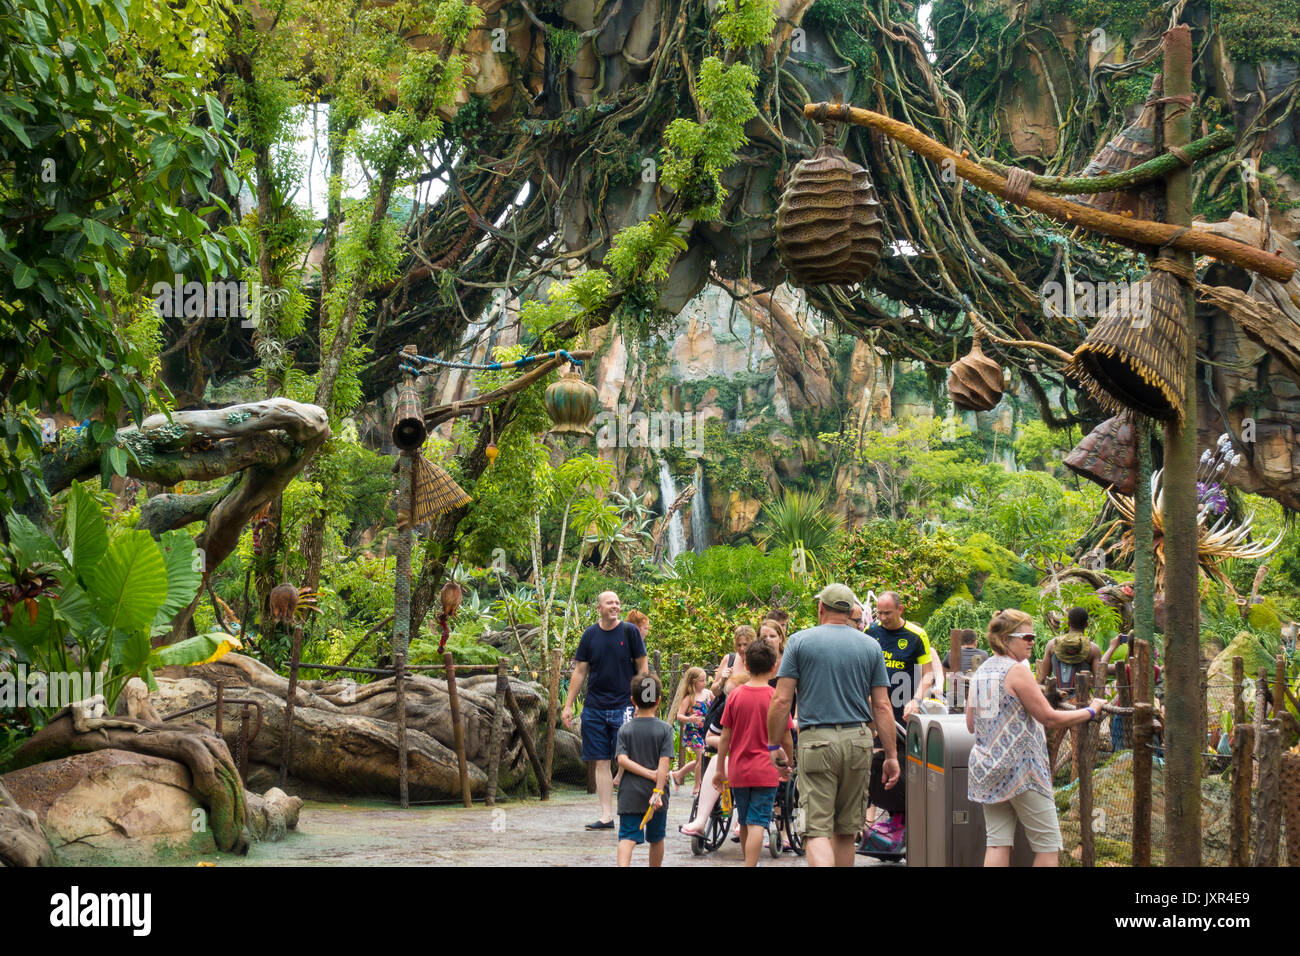 Visitors at Pandora World of Avatar in Disneys Animal Kingdom Theme Park - Stock Image